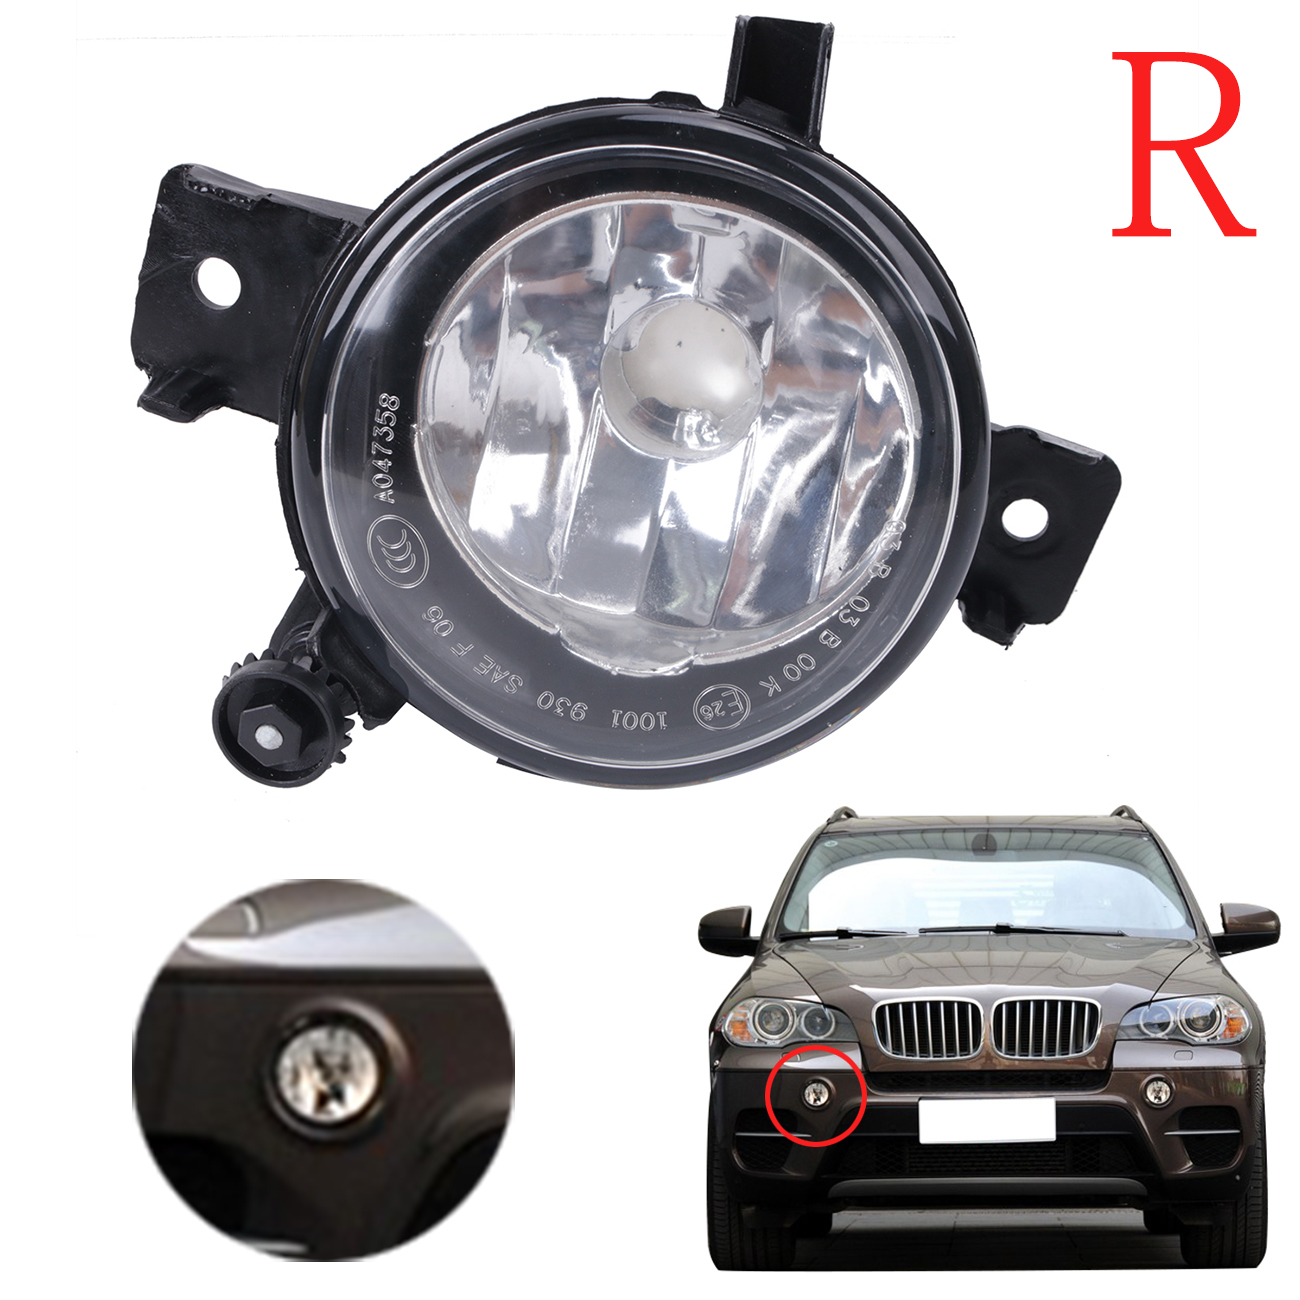 Car-Styling Right Bumper Fog Light Clear Driving Lamp Foglamp Housing 63177224644 For BMW X5 E70 2011 2012 2013 #W086-R for vw 2010 2011 2012 tiguan clear lens bumper fog driving light fog lamp right side 5nd 941 700